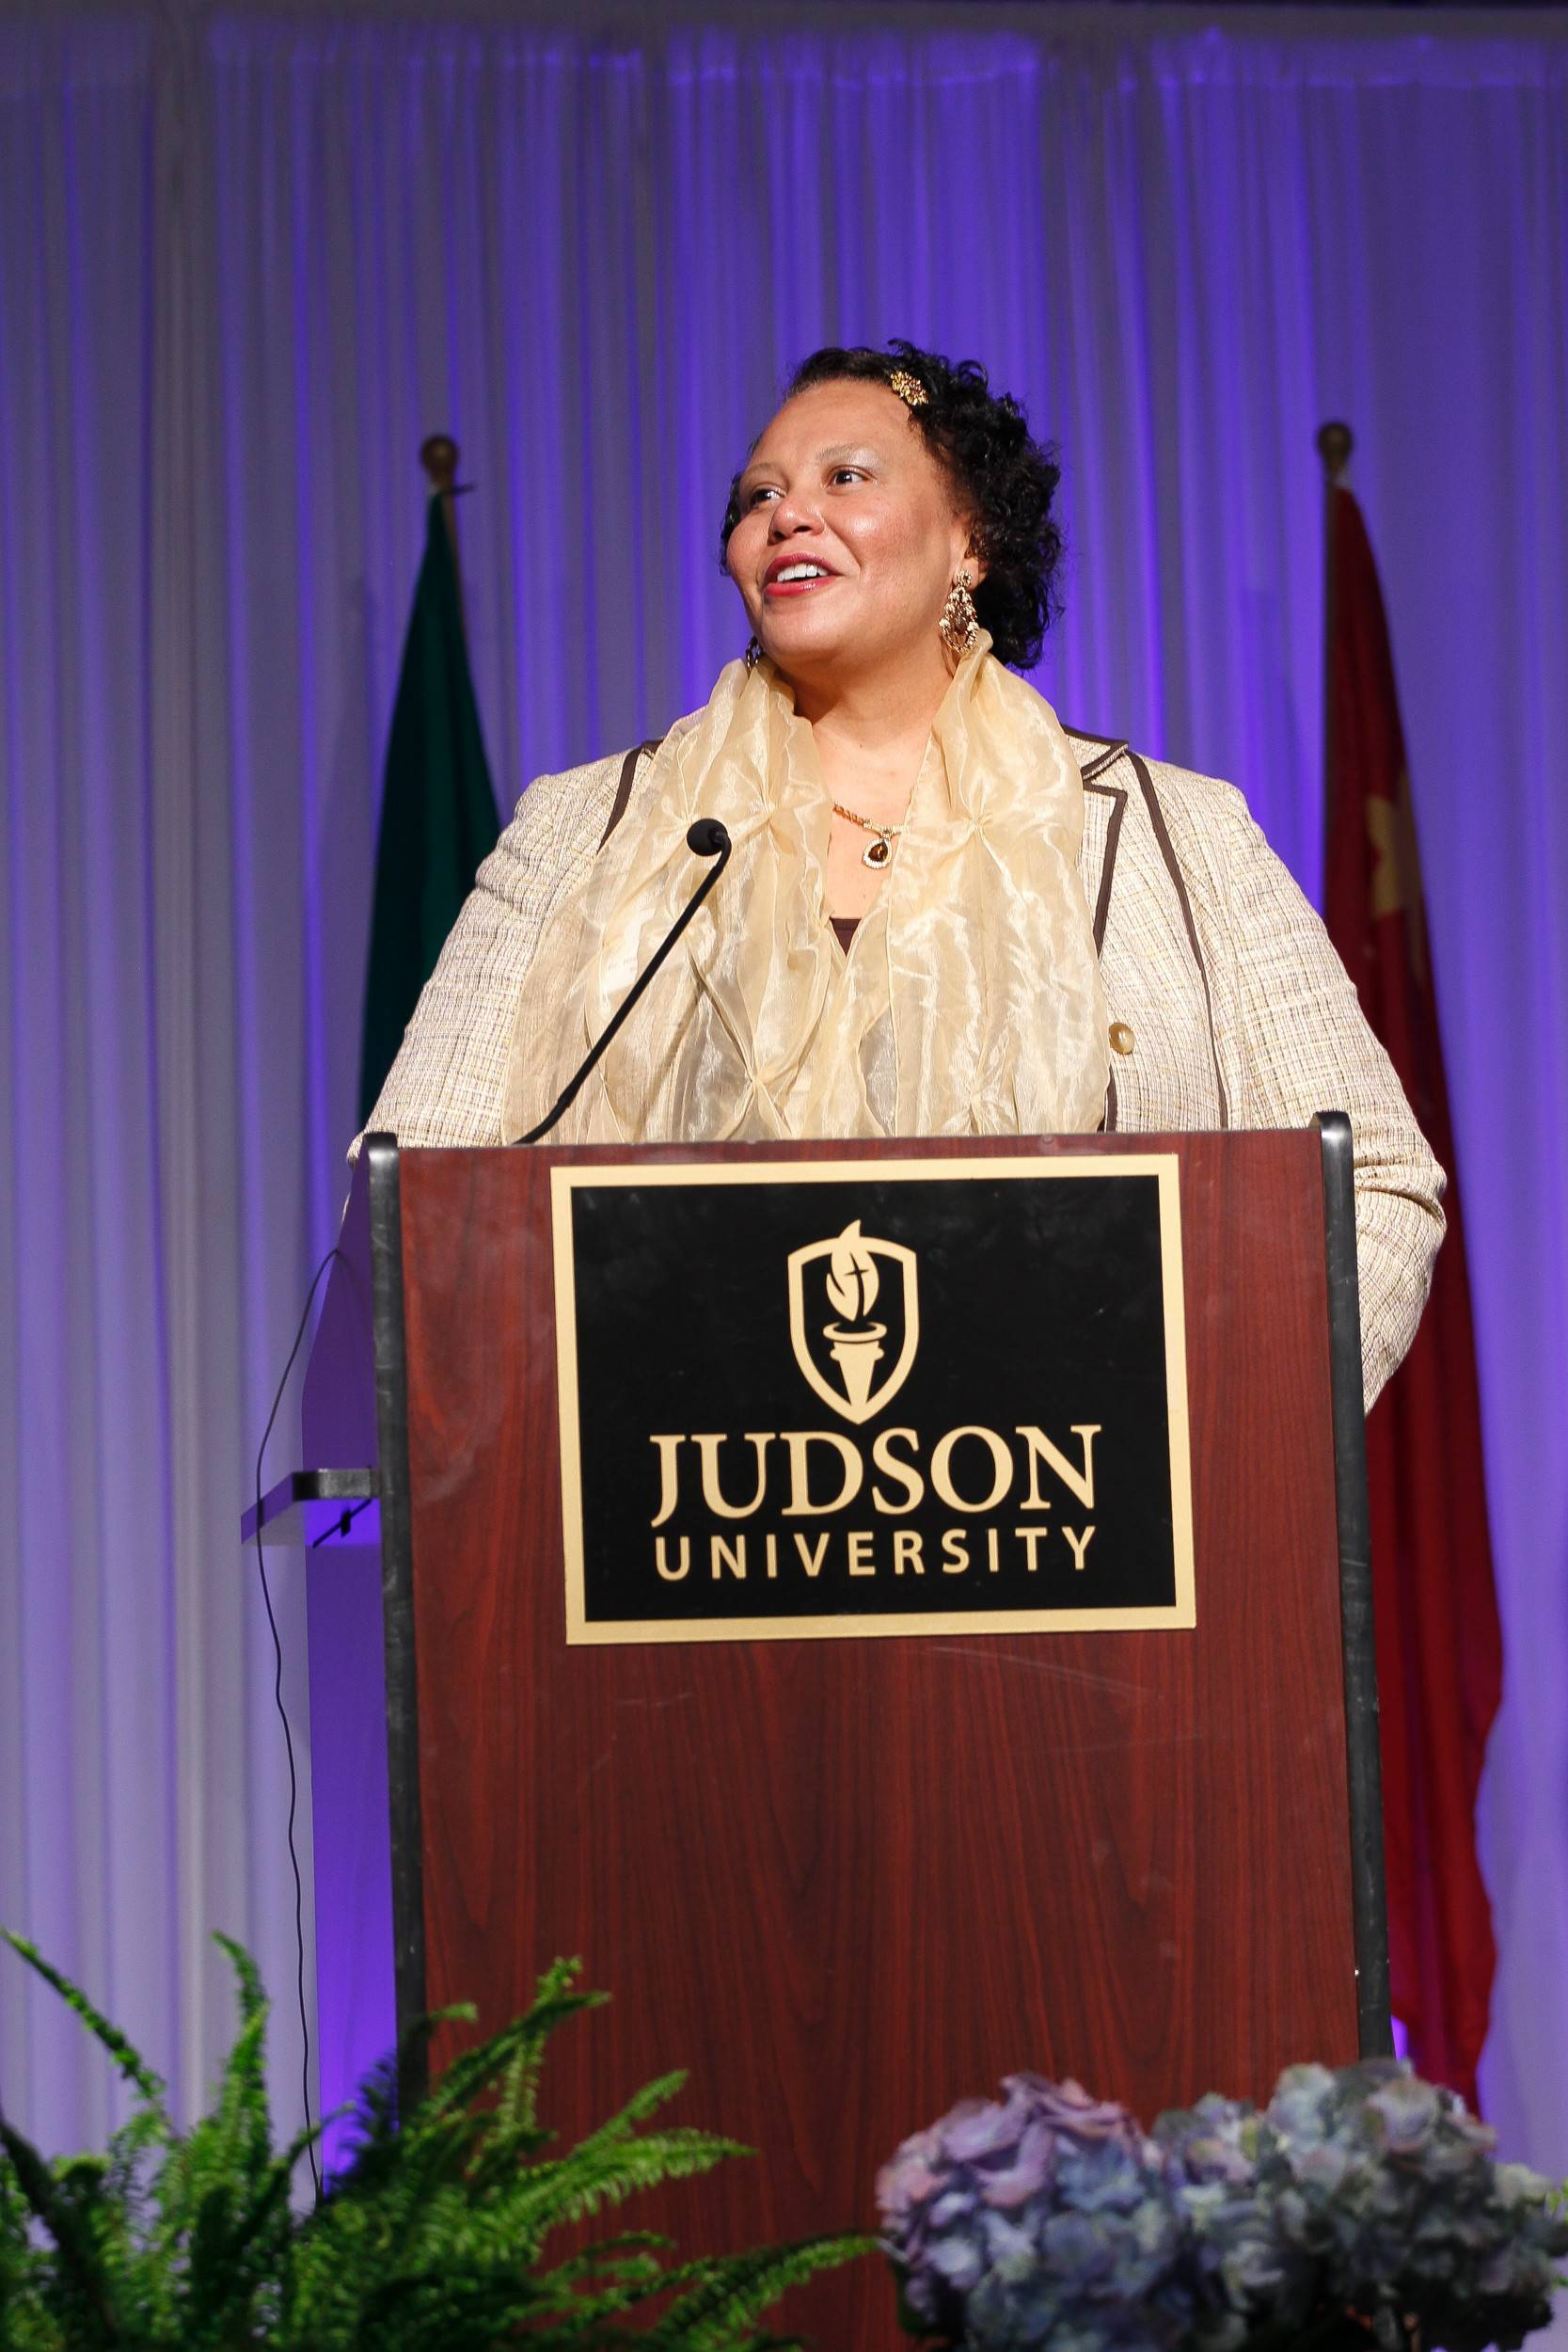 Dr. Risé D. Jones, co-founder of Hamilton Wings, received Judson University's D. Ray Wilson Volunteer Service Award Wednesday. Hamilton Wings is an enrichment program for Elgin area children that uses the arts to promote leadership development and academic readiness of socially and/or economically challenged children.